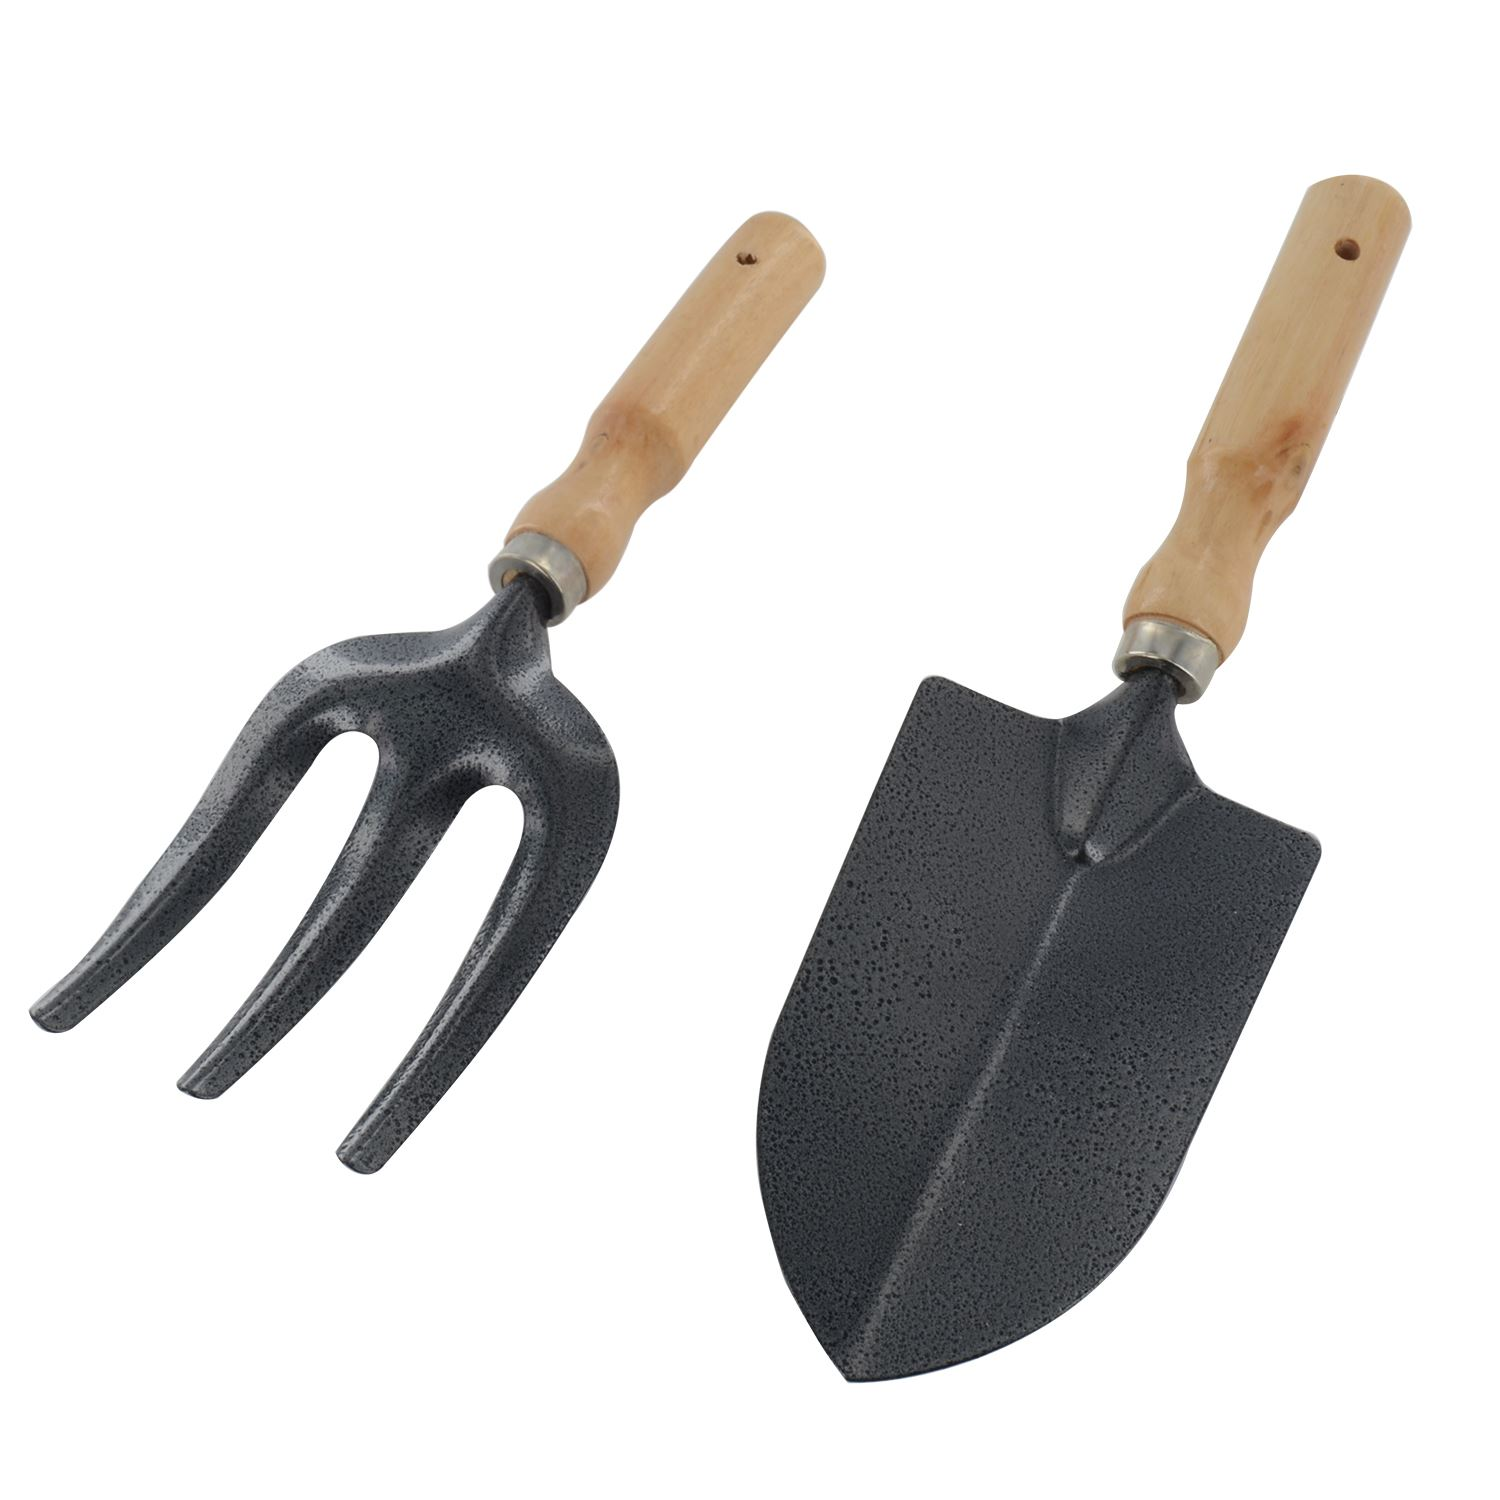 Garden trowel hand fork tool gardening potting weeding for Ladies garden trowel set